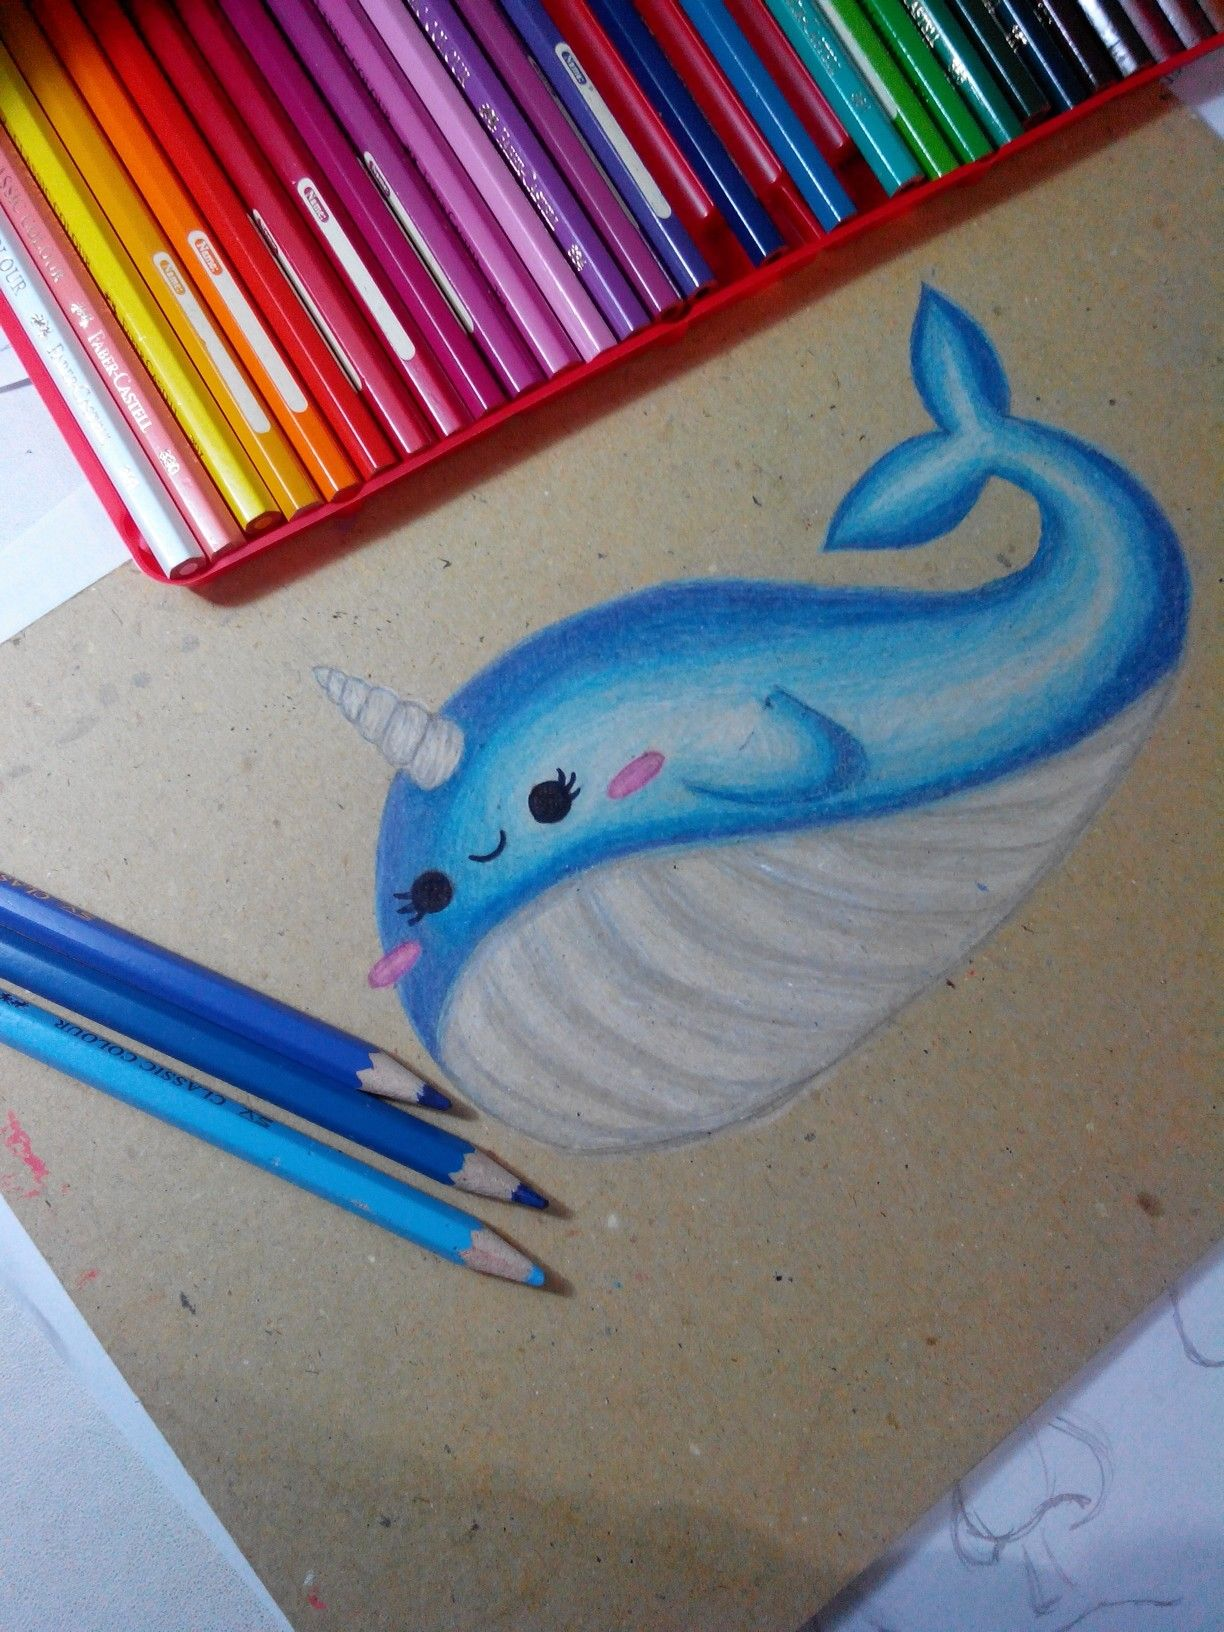 Baby narwhal drawing done by me♥ My drawings